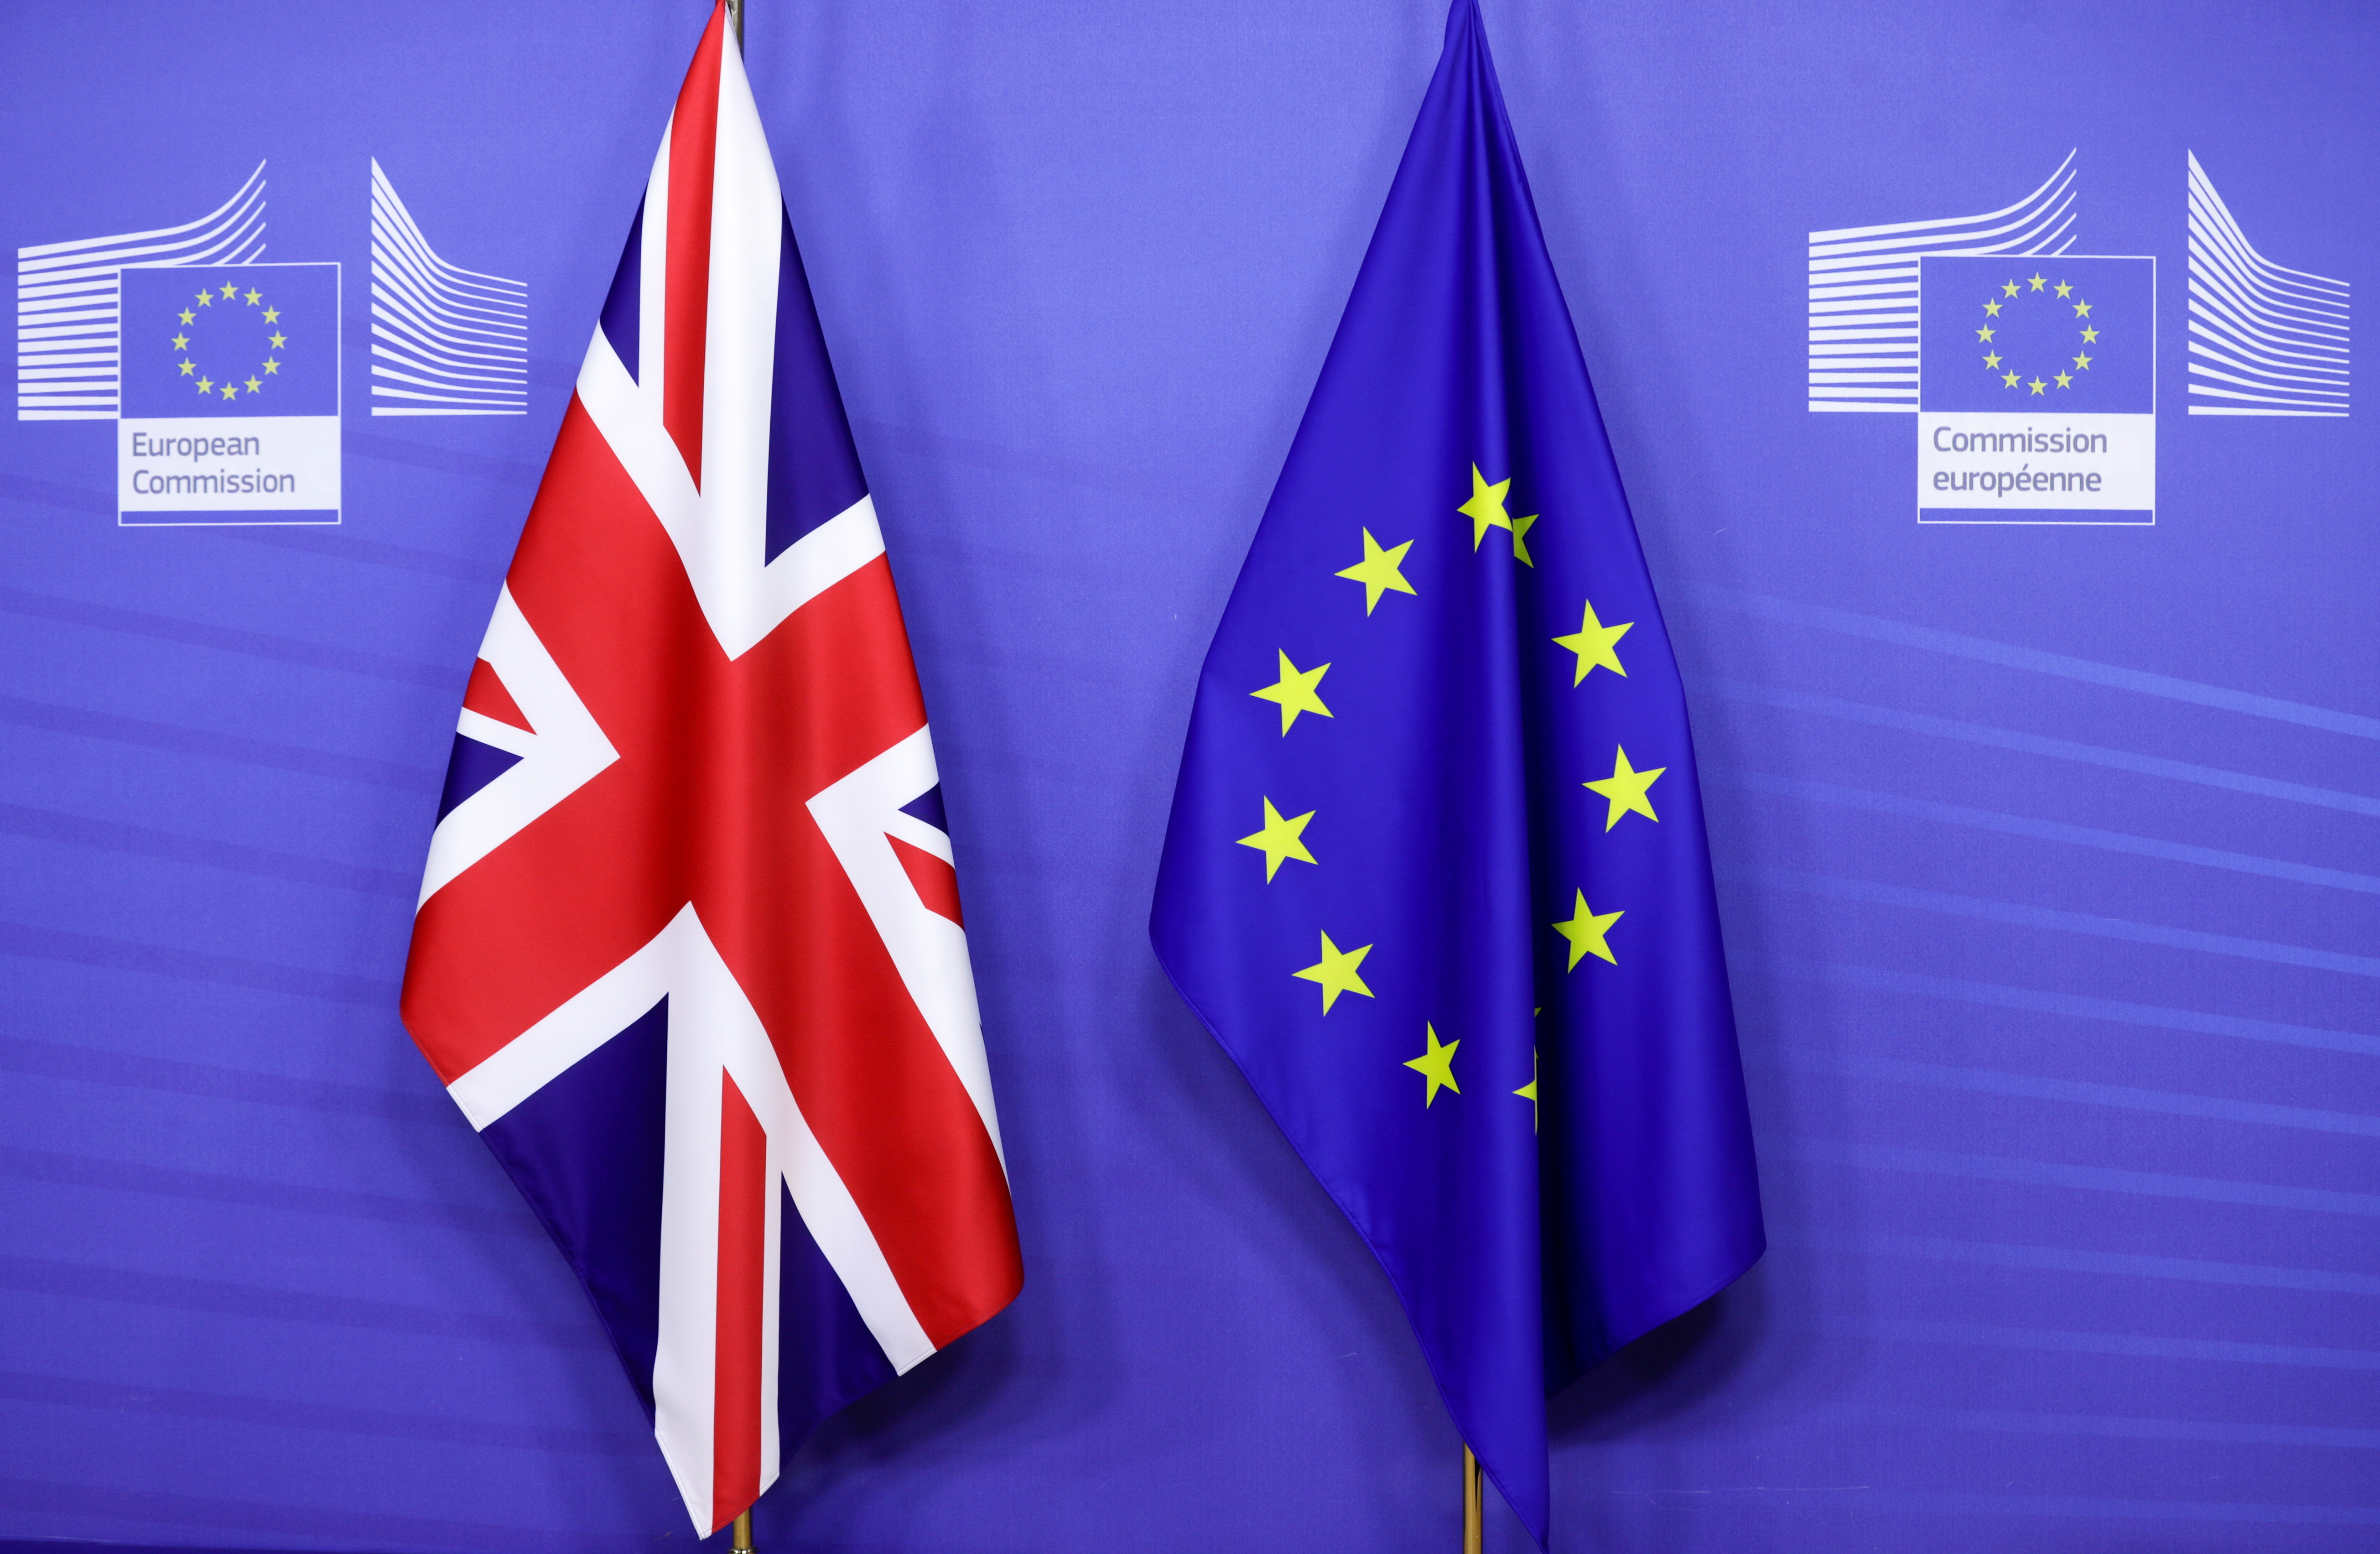 Flags of Great Britain and the European Union are seen ahead of the meeting of European Commission President Ursula von der Leyen and British Prime Minister Boris Johnson, in Brussels, Belgium December 9, 2020. Olivier Hoslet/Pool via REUTERS